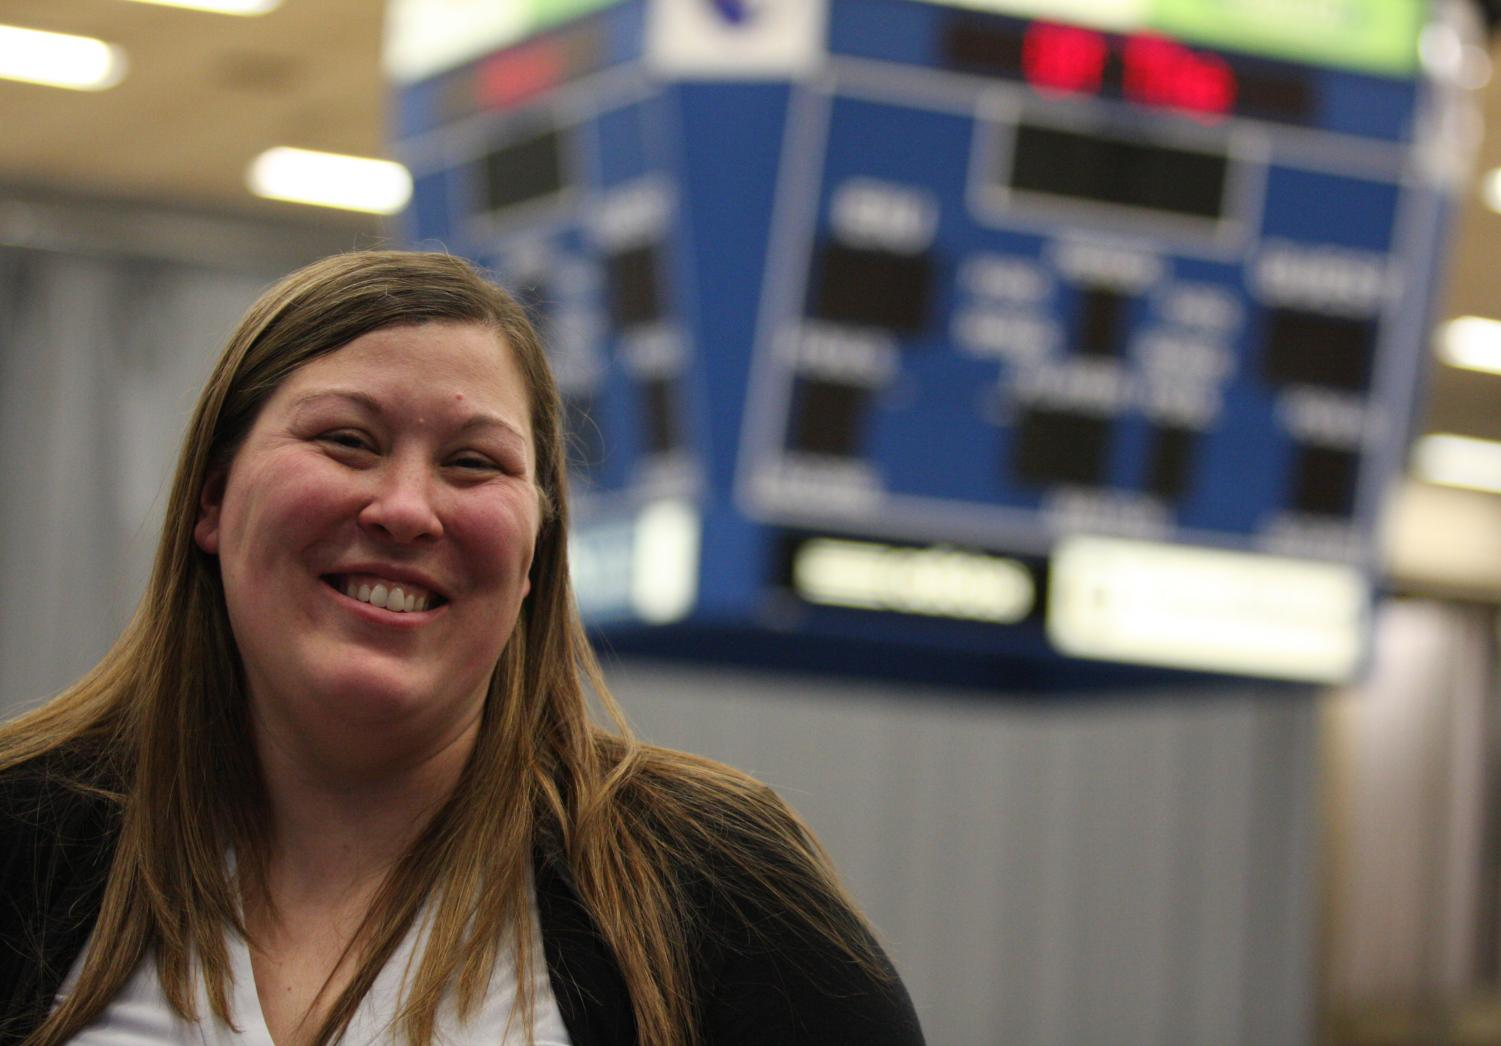 New Eastern volleyball coach Julie Allen made her first appearence at the Eastern men's basektball game on Thursday night. Allen was previously a volunteer assistant coach at Wichita State for two seasons.